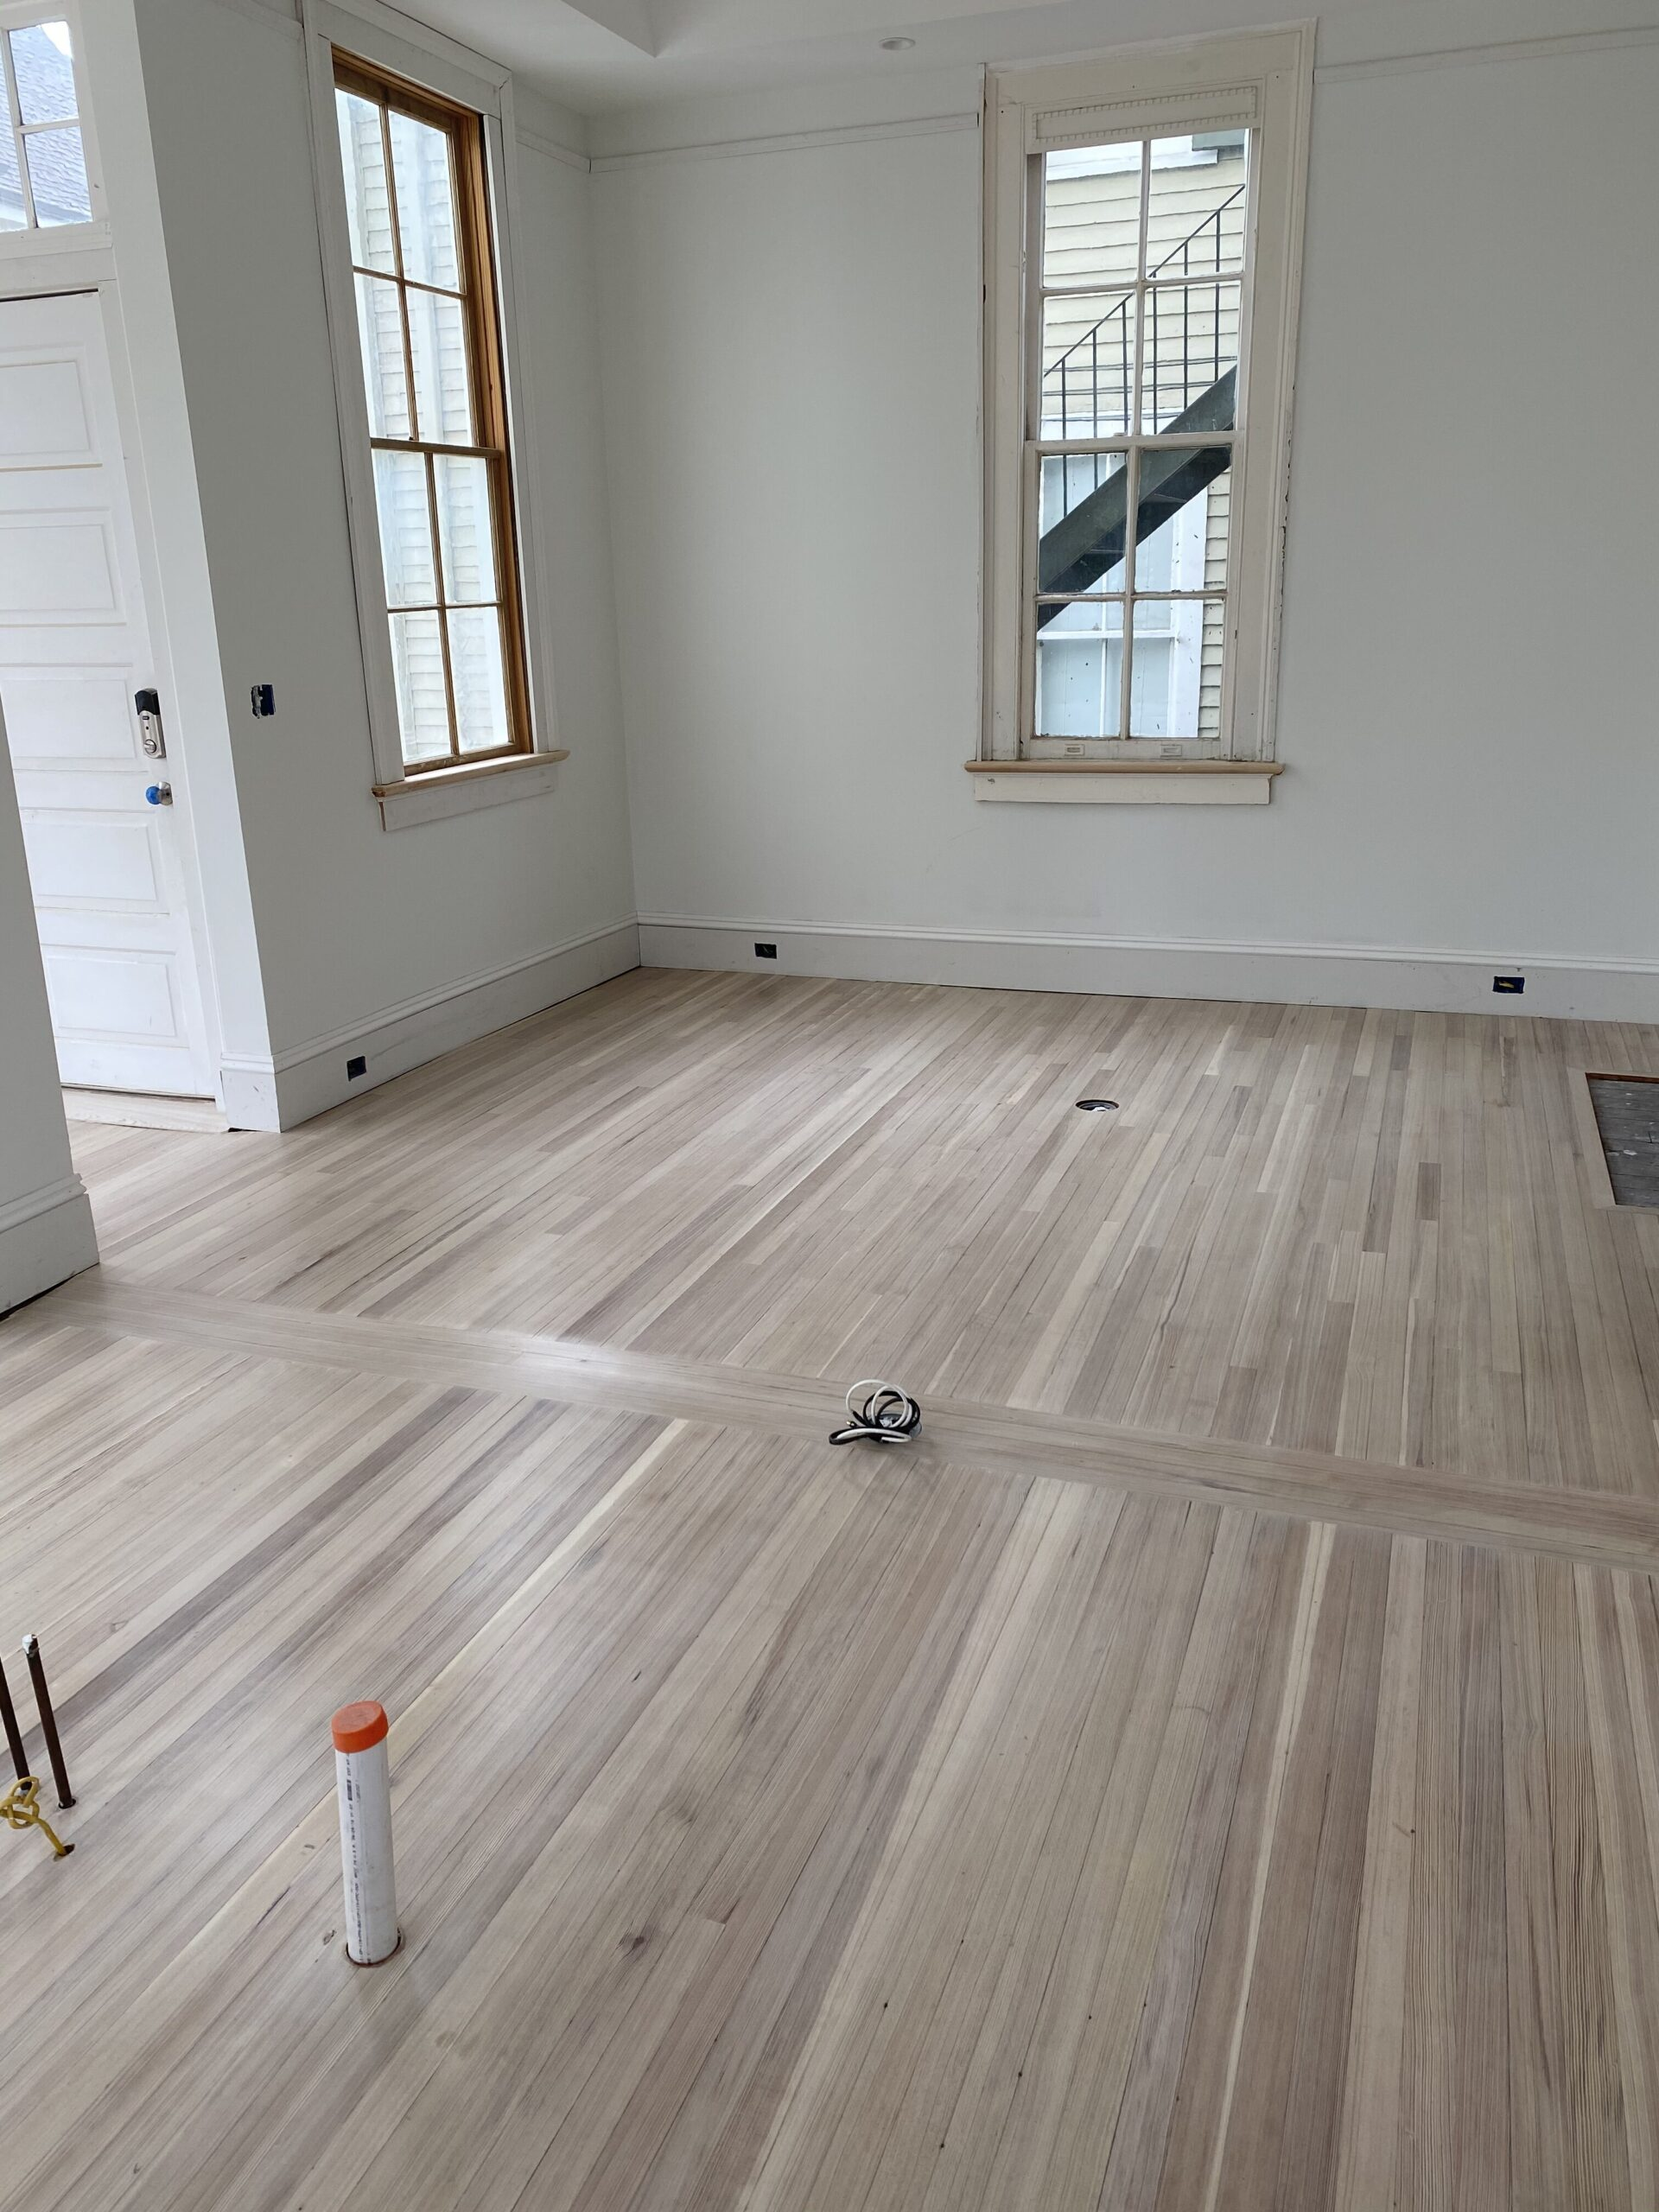 Beautiful white wash finish red heart of pine hardwood flooring in a den area with white walls